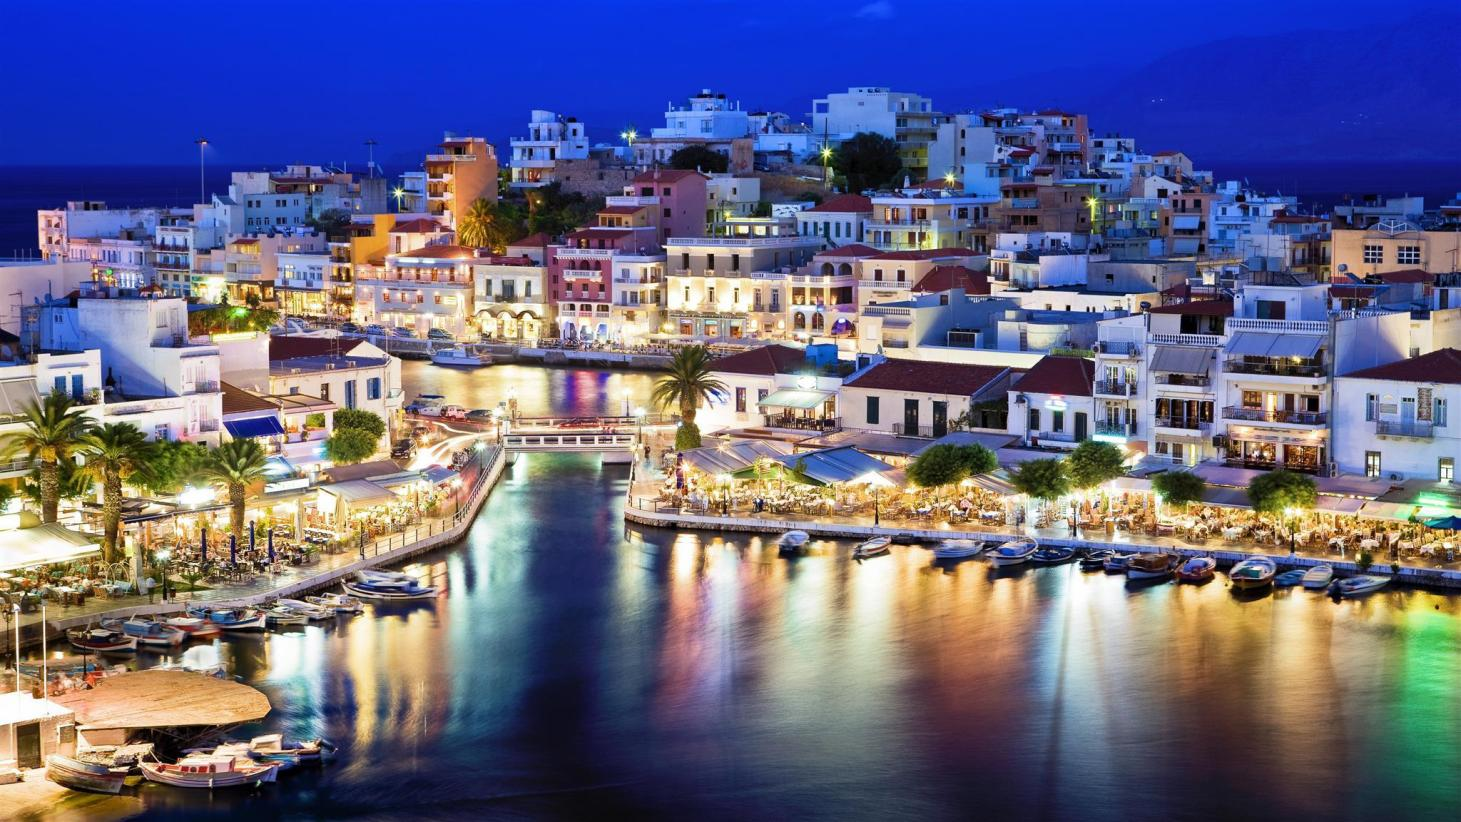 10 Best Crete Island Hotels Hd Photos Reviews Of Hotels